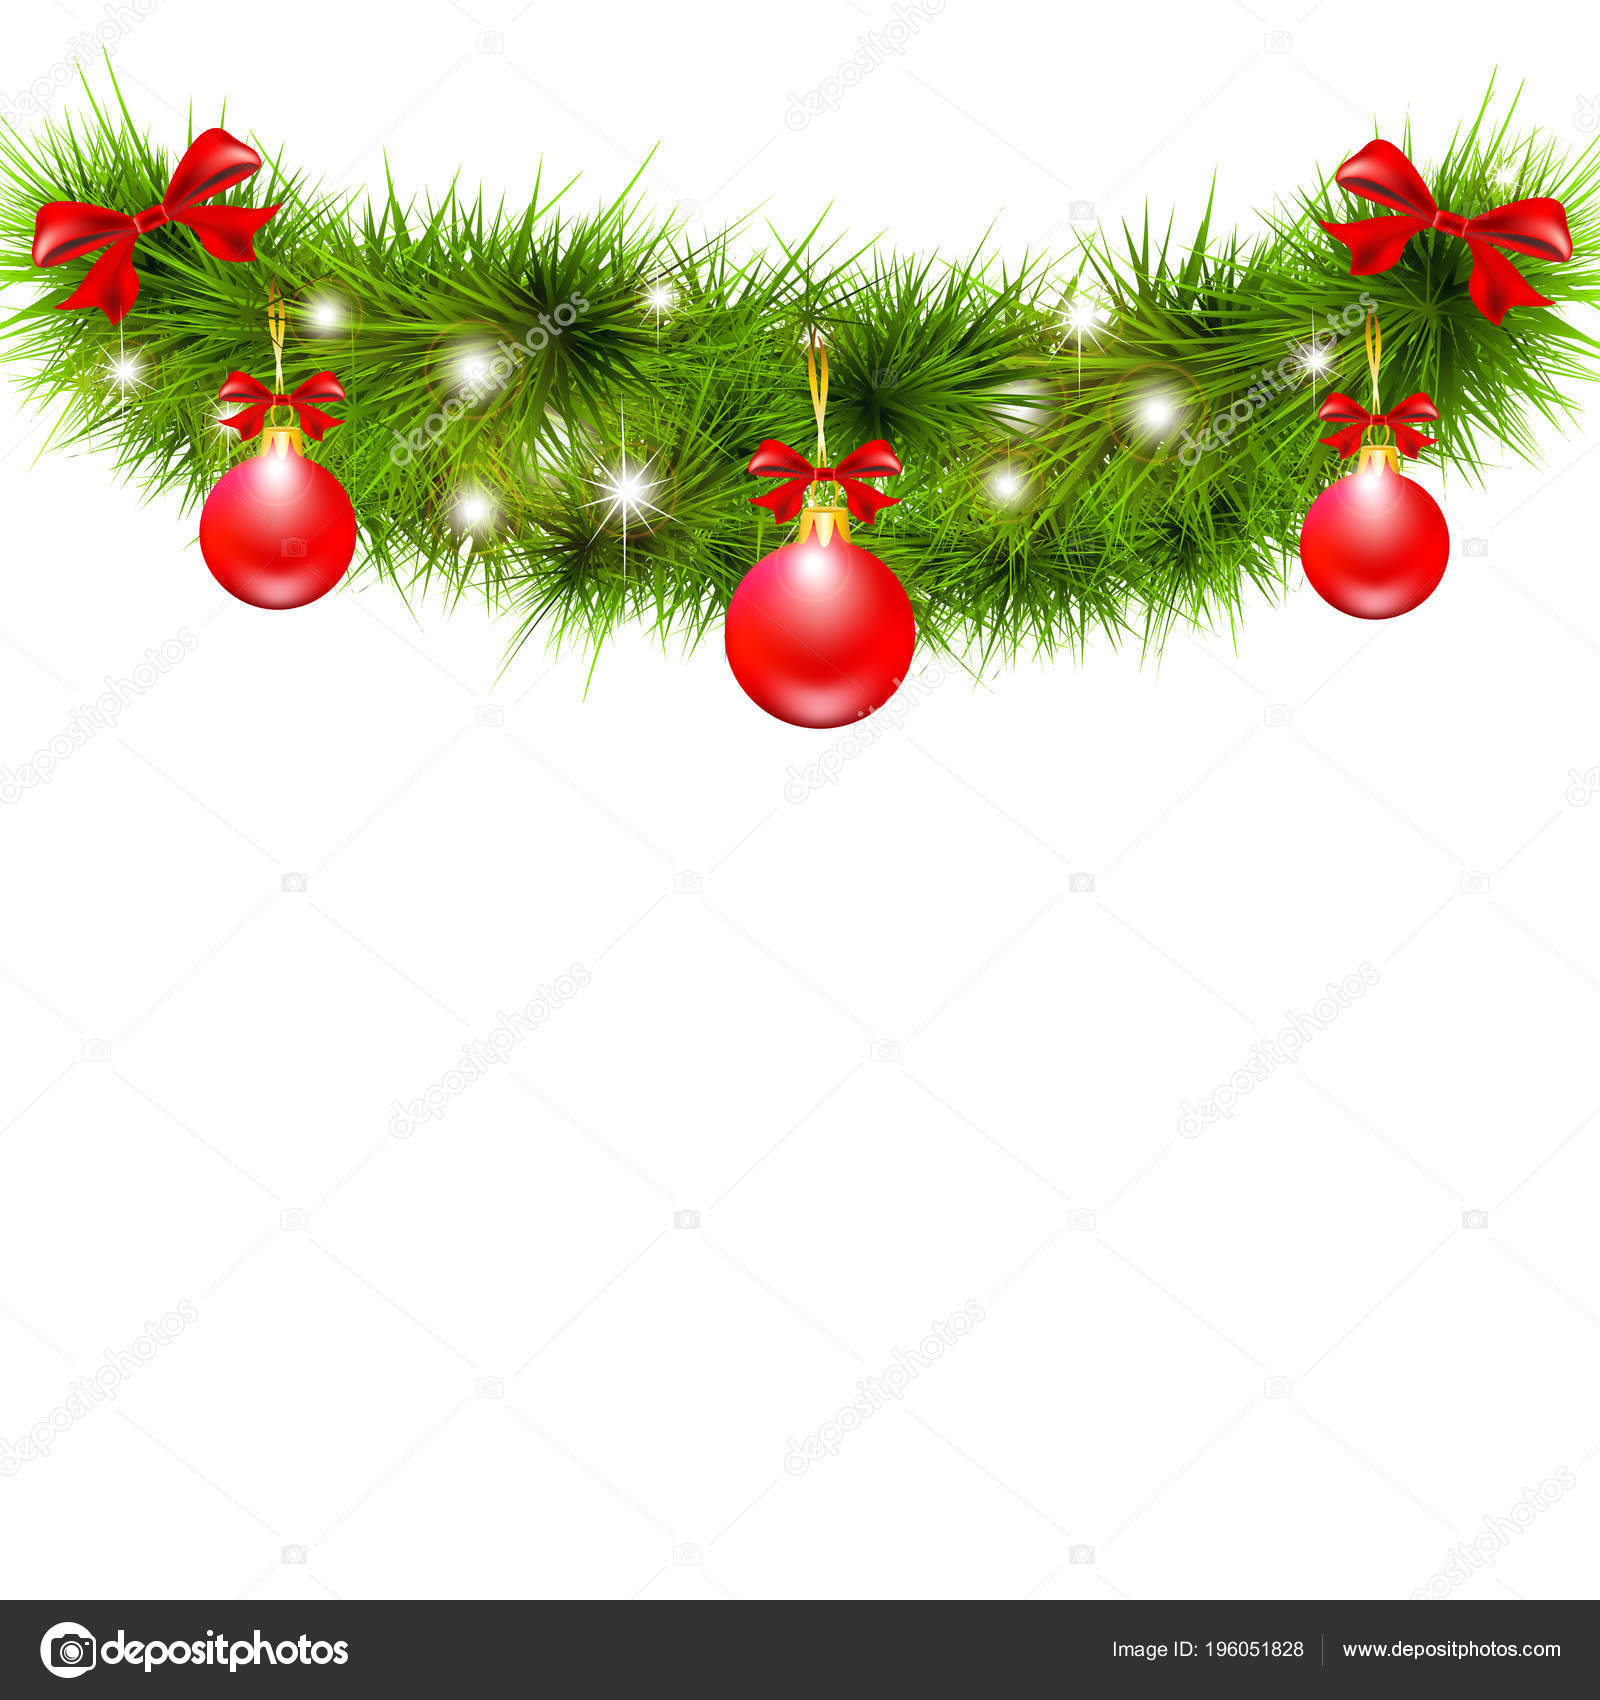 Christmas Tree Bows White.Christmas Tree Branch Red Balls Bows Isolated White